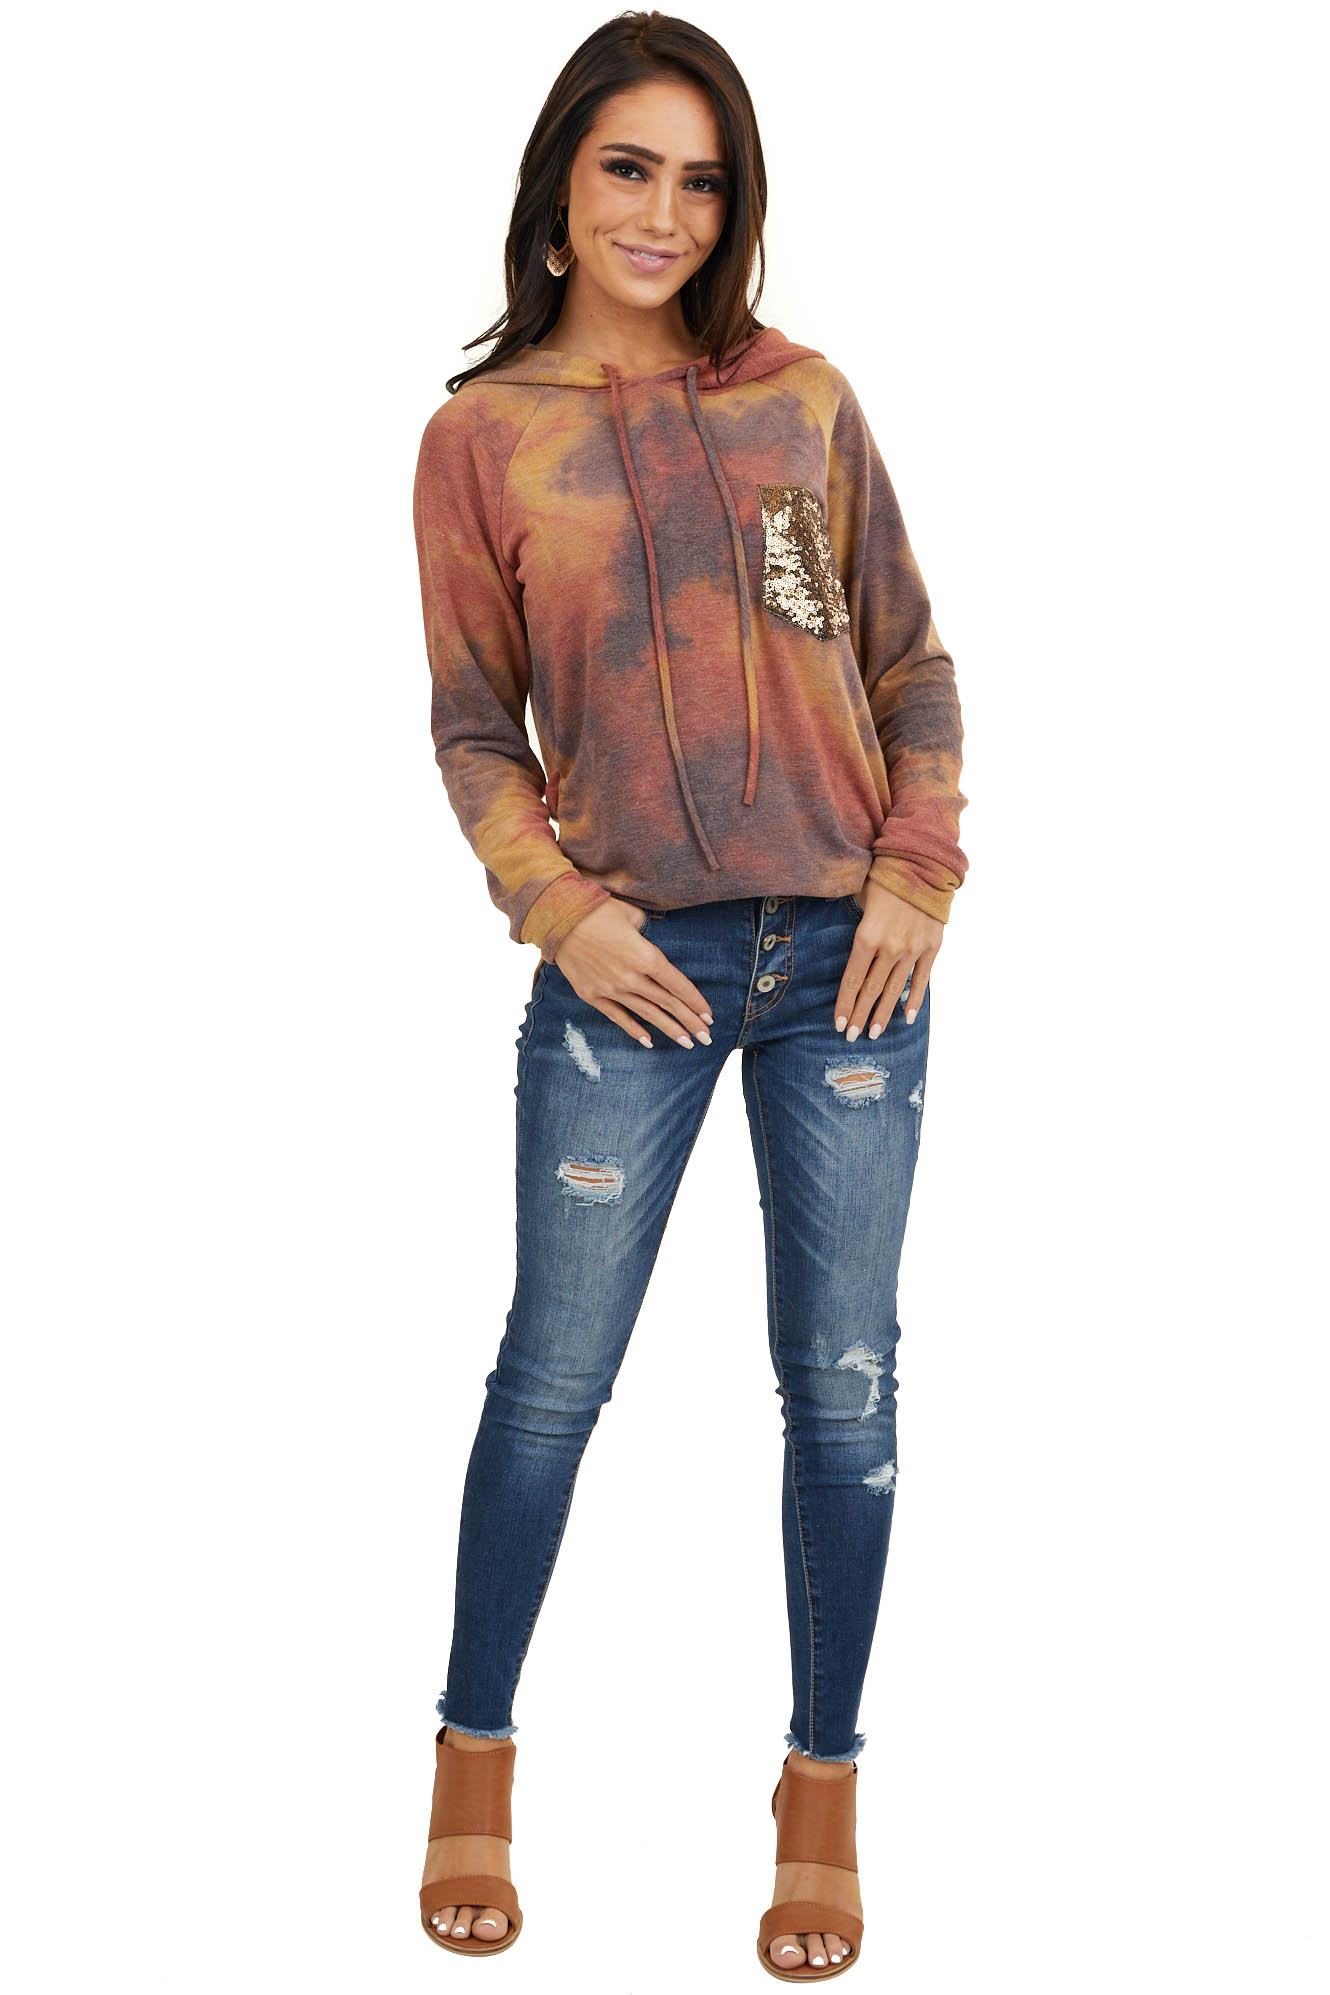 Rust and Dusty Indigo Tie Dye Hoodie with Gold Sequin Pocket